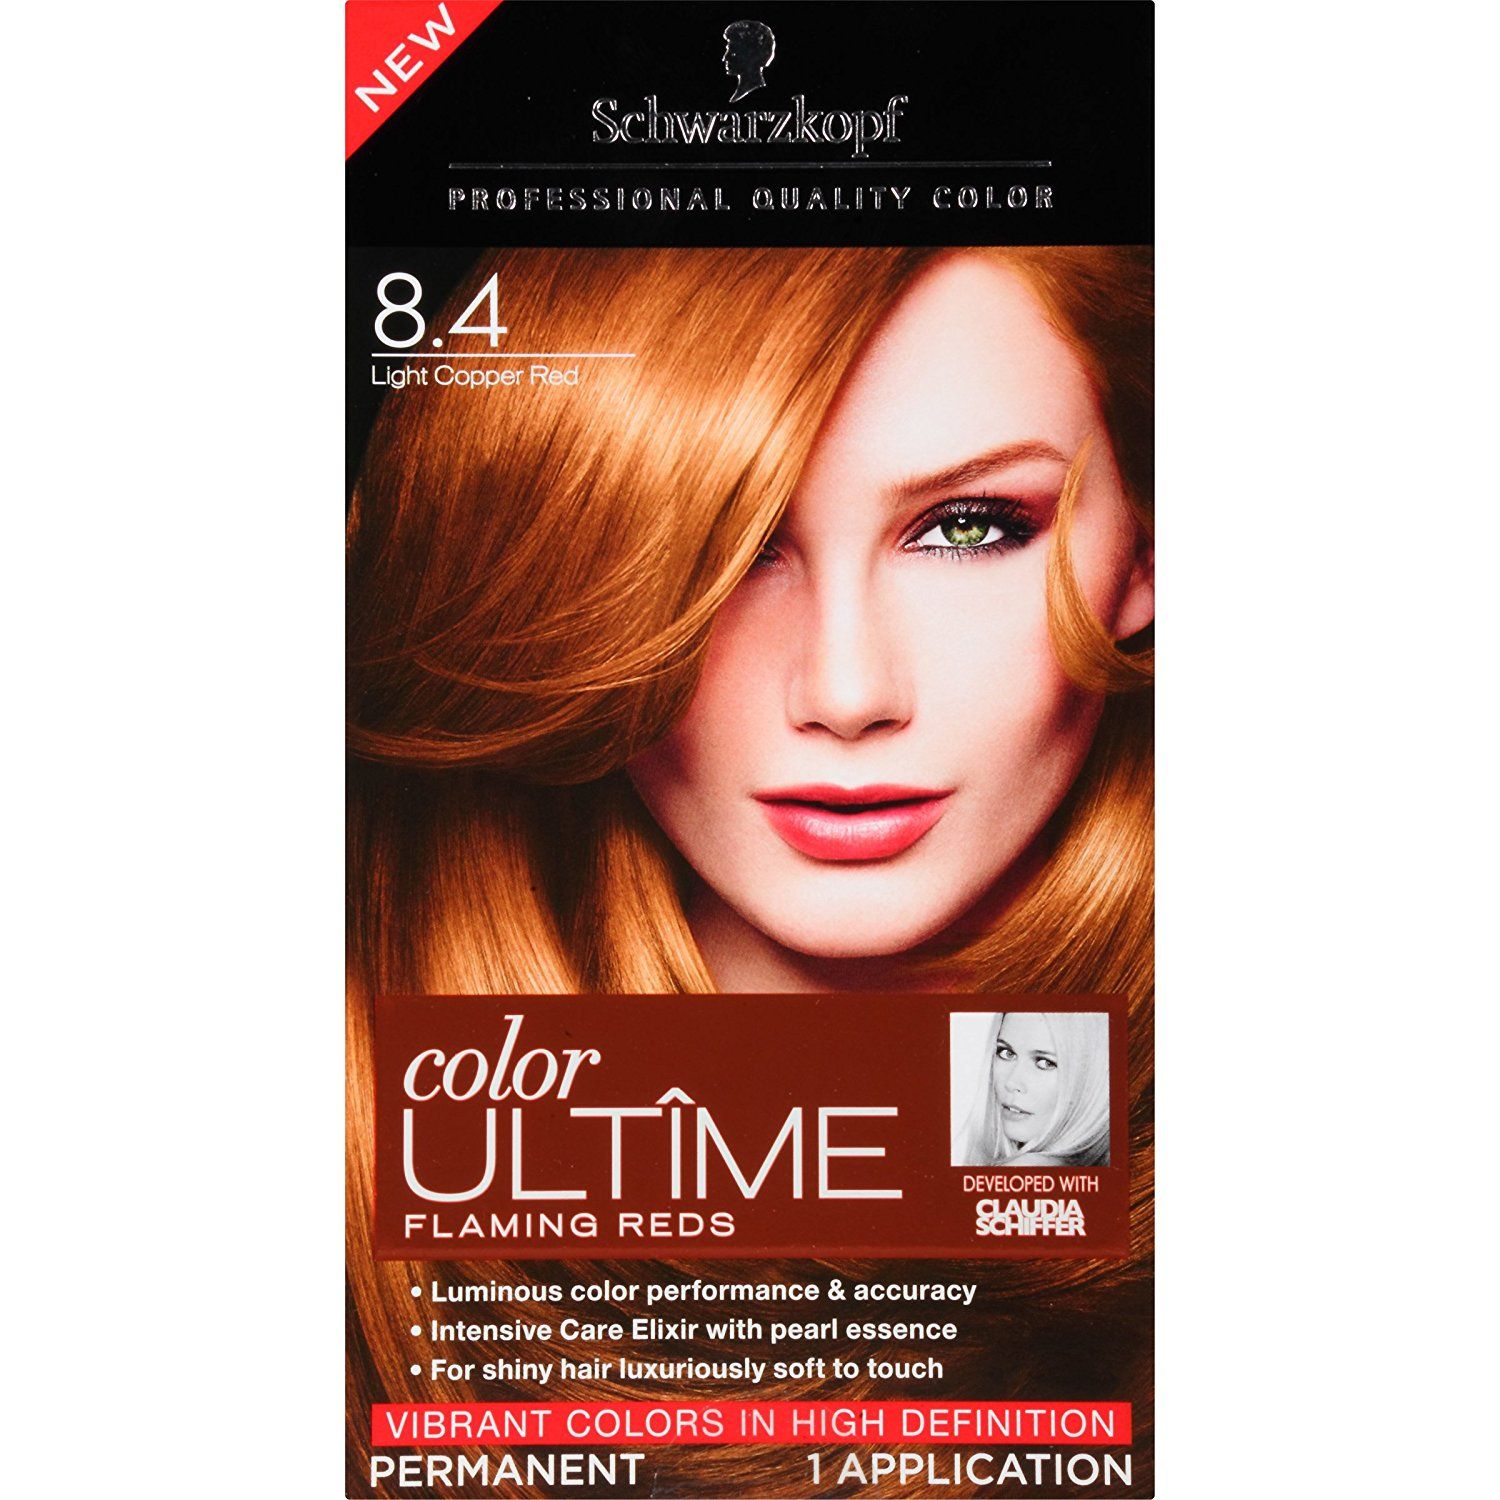 Schwarzkopf Color Ultime Flaming Reds Hair Coloring Kit 84 Light